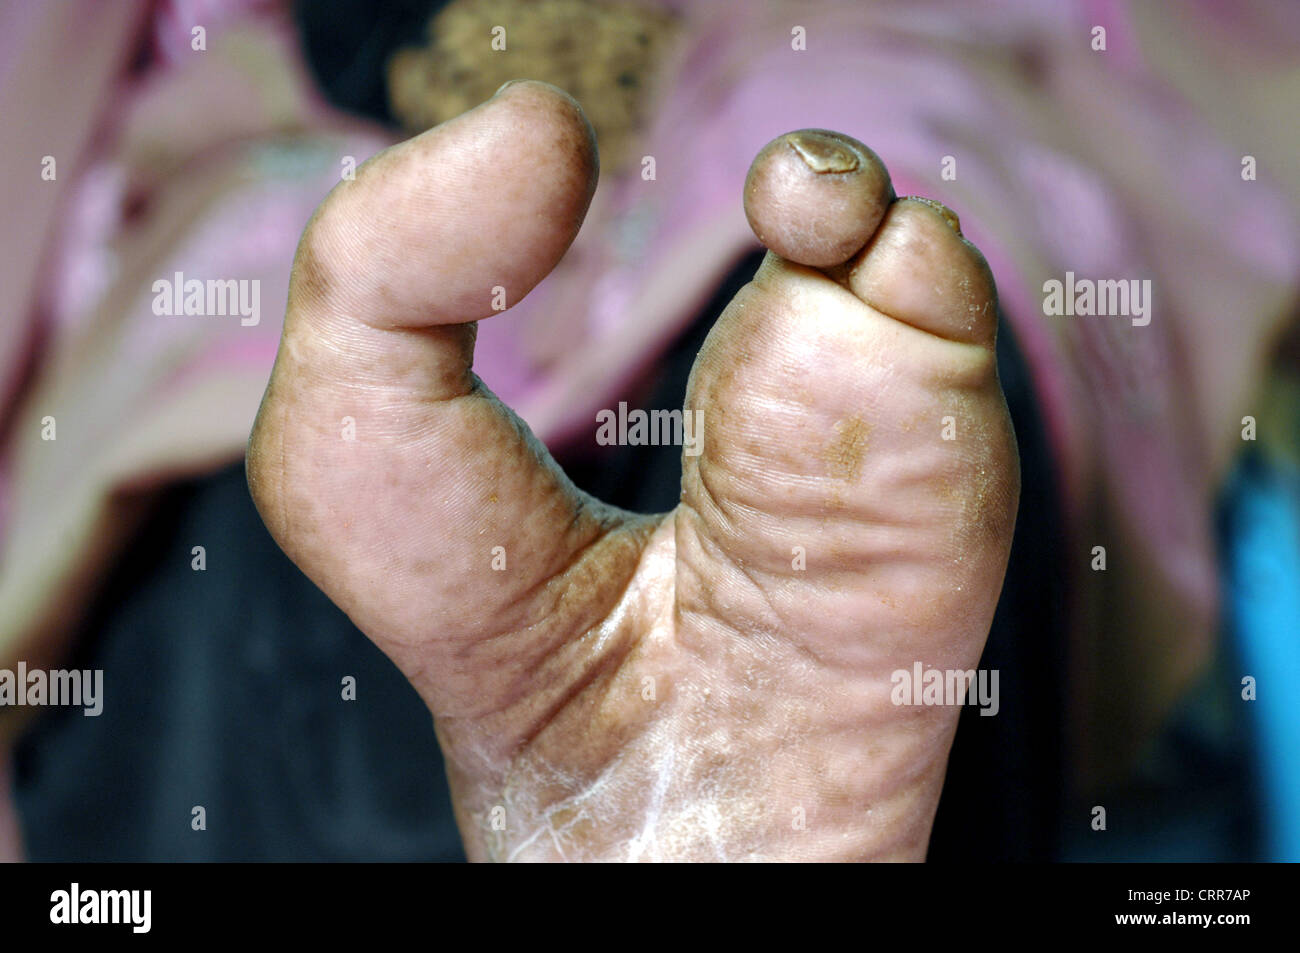 Close up of a left foot with second, third and fourth toes amputated. Stock Photo